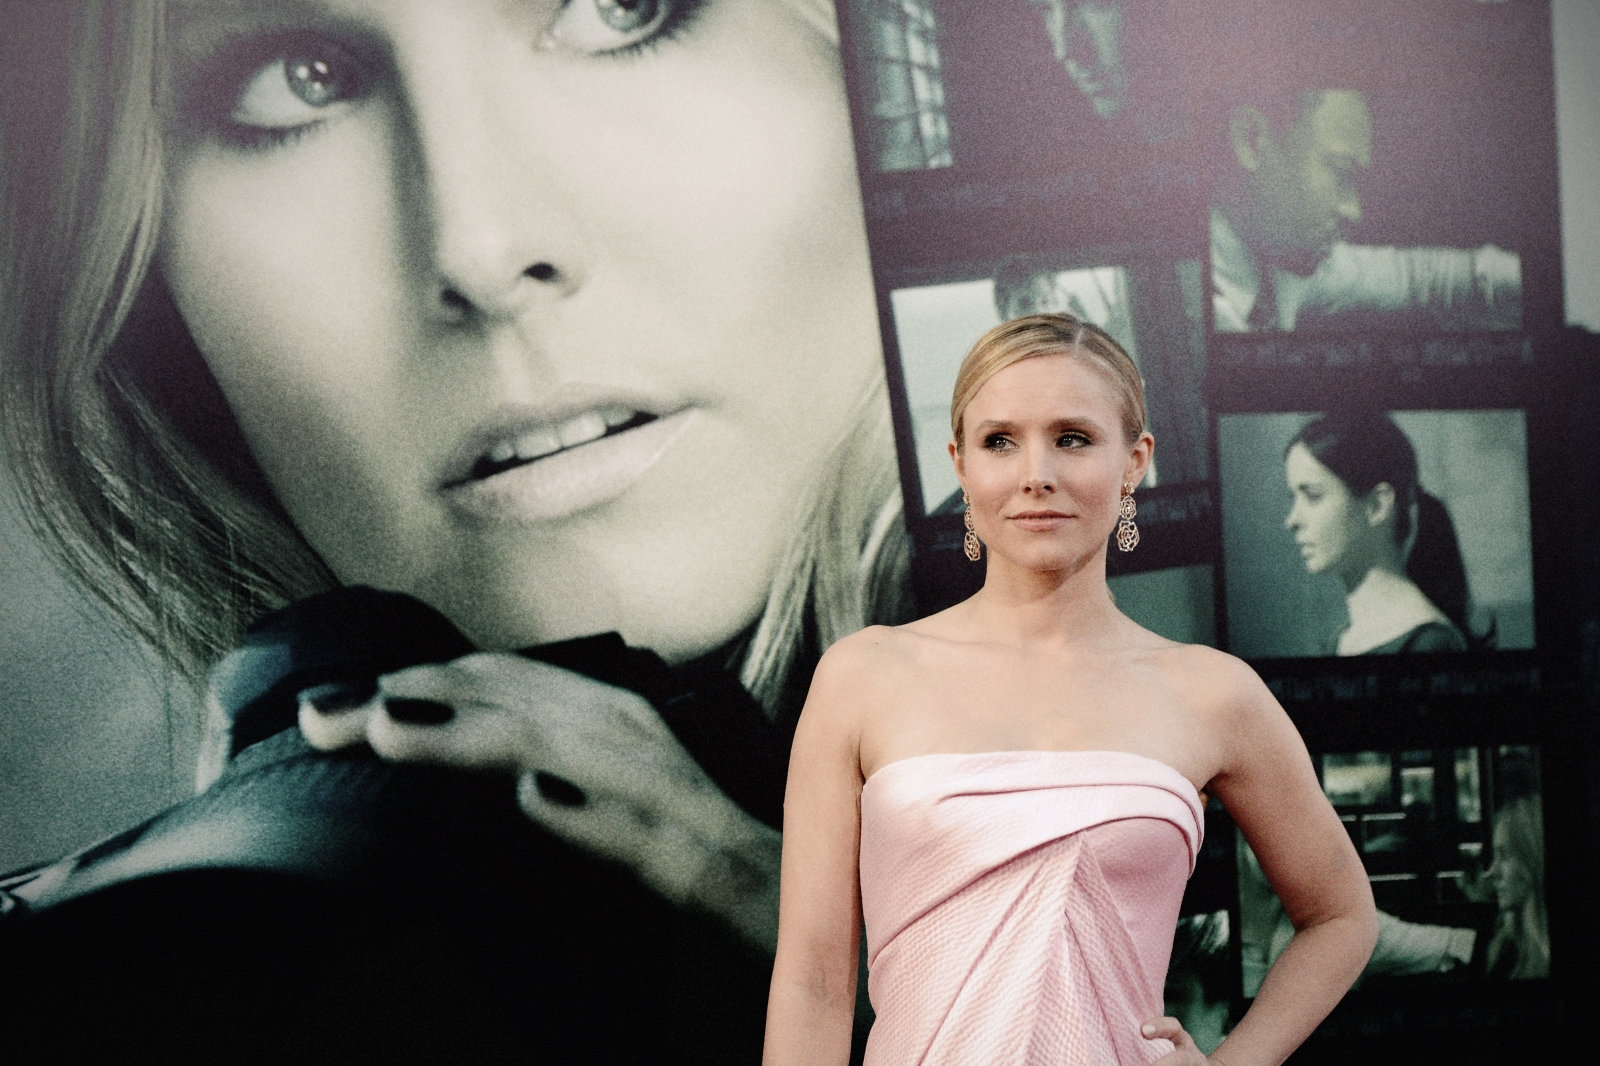 Hulu is close to making a new season of 'Veronica Mars' | DeviceDaily.com